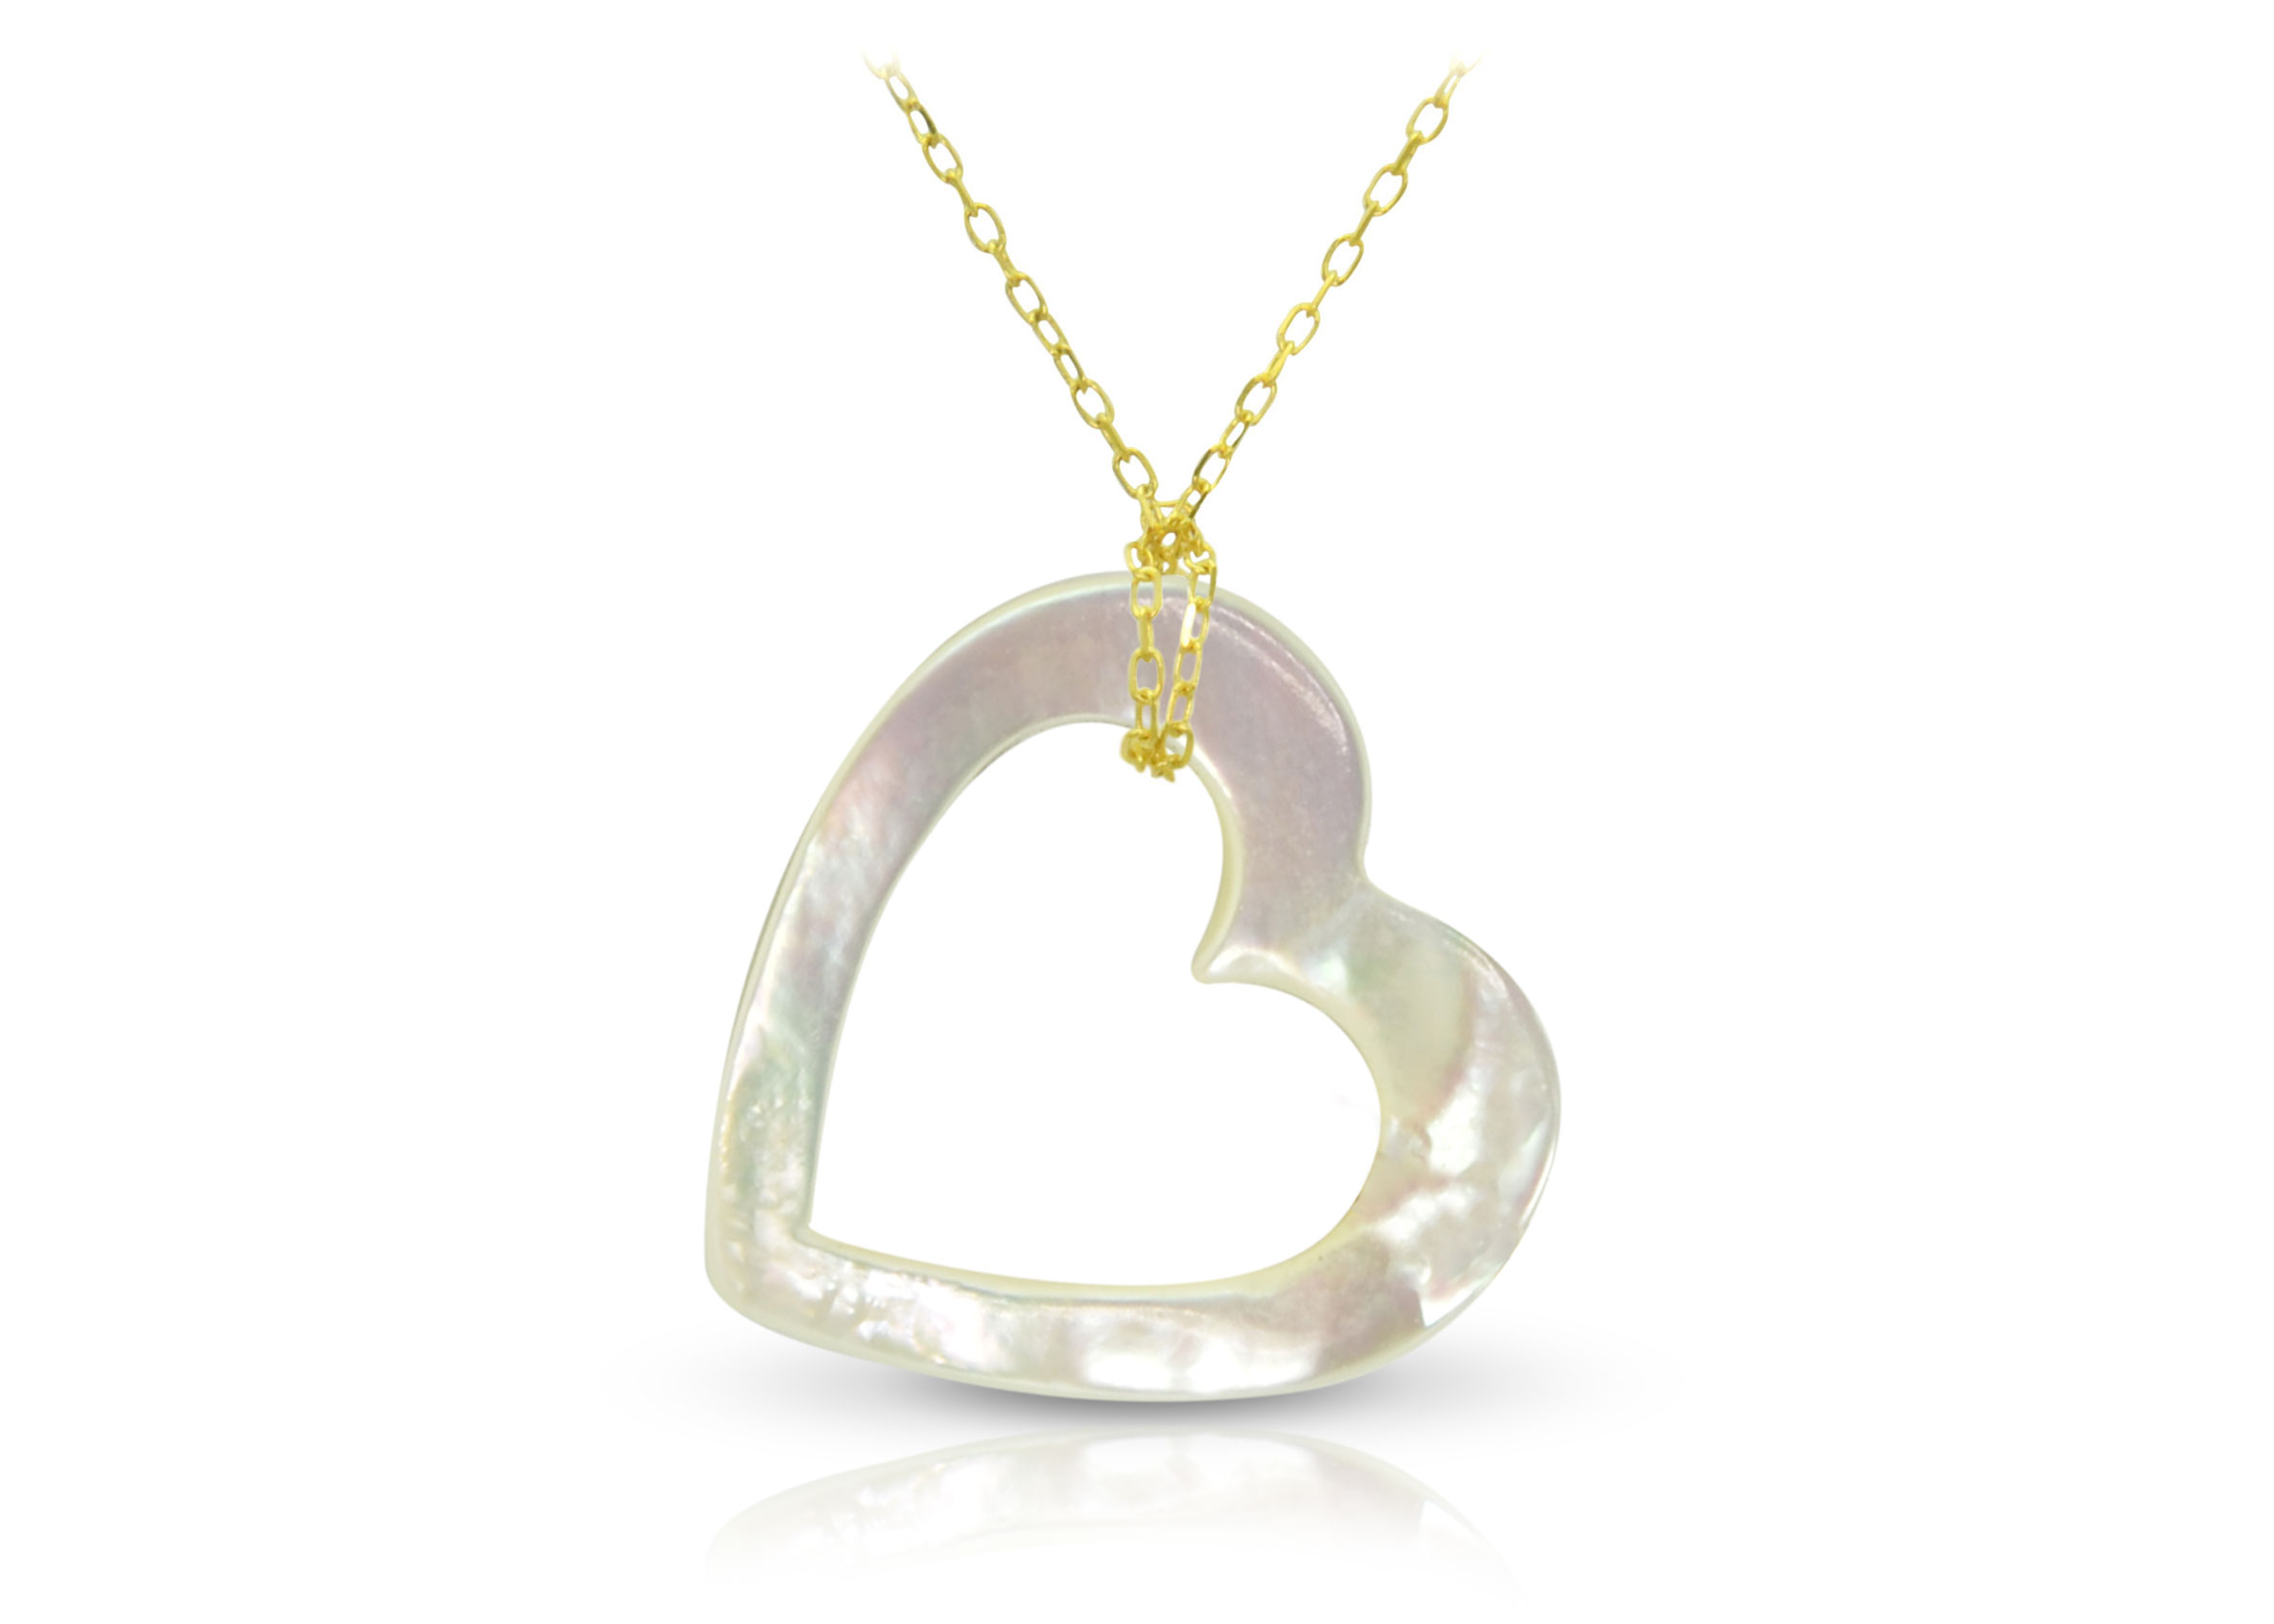 Vera Perla 18K Gold Hollow Heart Mother of Pearl Necklace